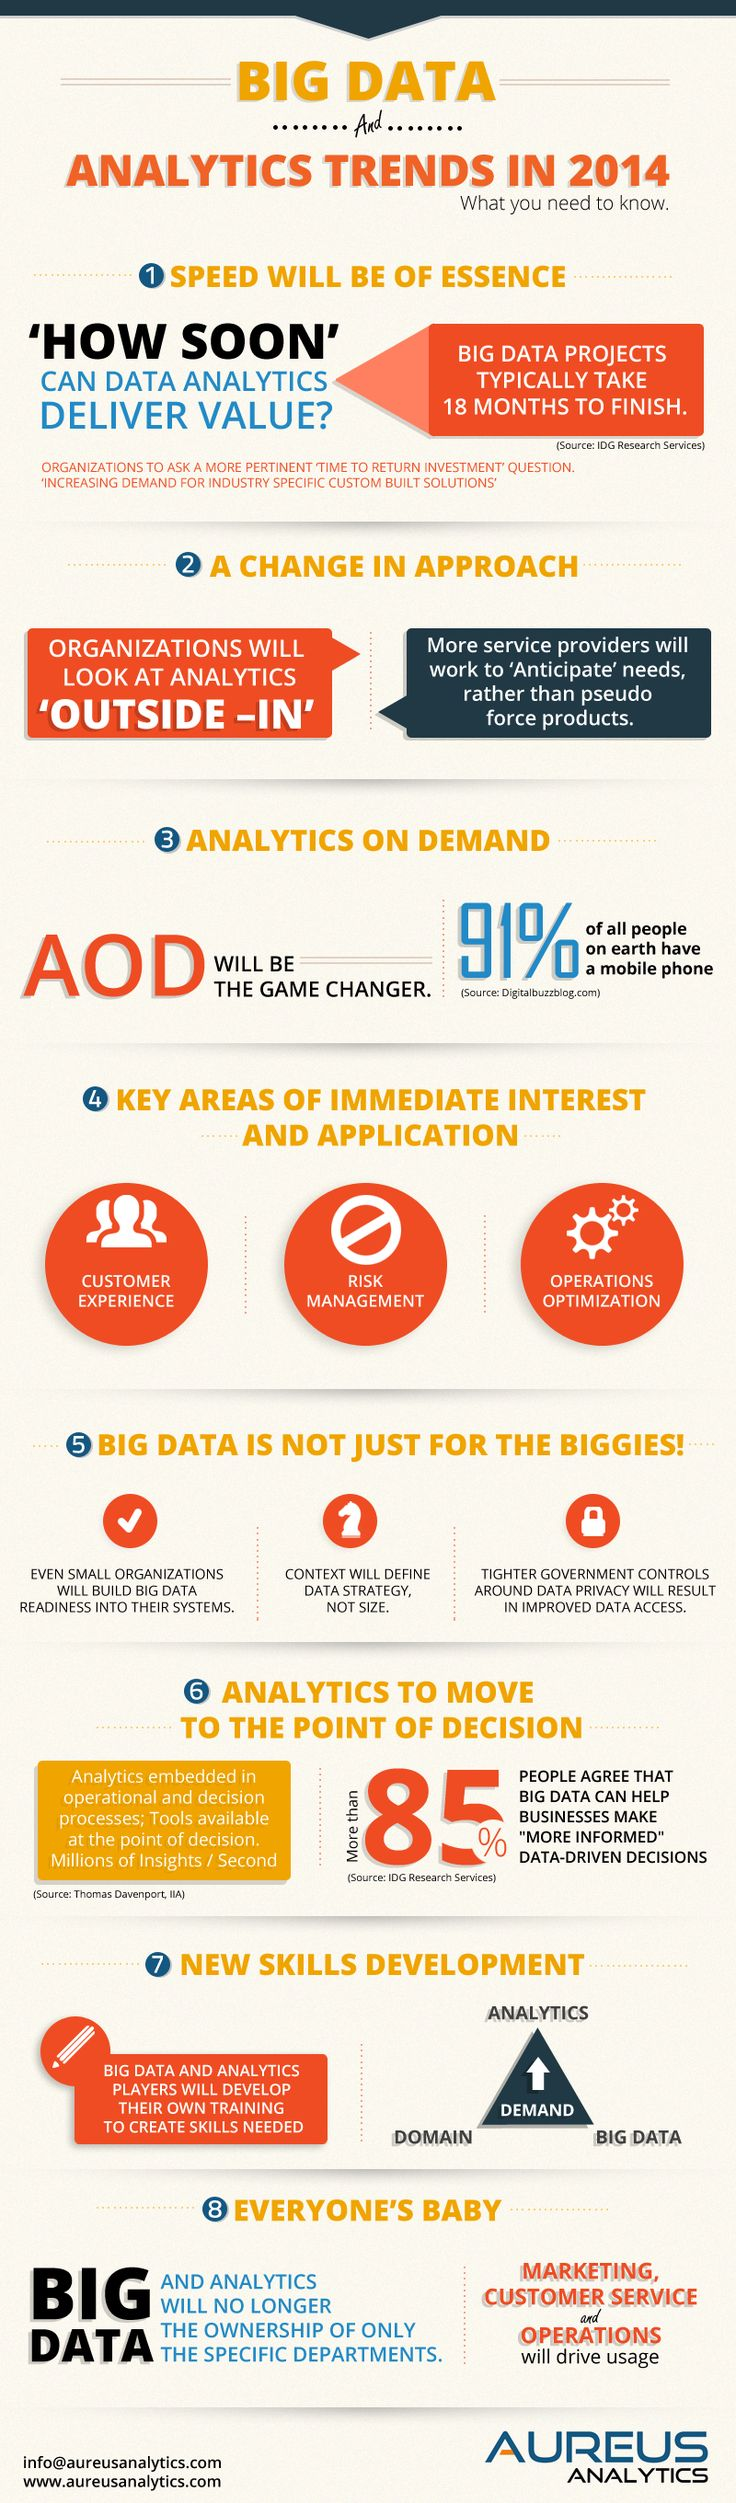 http://blog.aureusanalytics.com/infographic-big-data-analytics-trends-2014/ An infographic from Aureus about the top trends; big data, analytics, analytical models; that are defining trends of analytics today and are likely to have a significant influence in 2014 and future course around the globe.